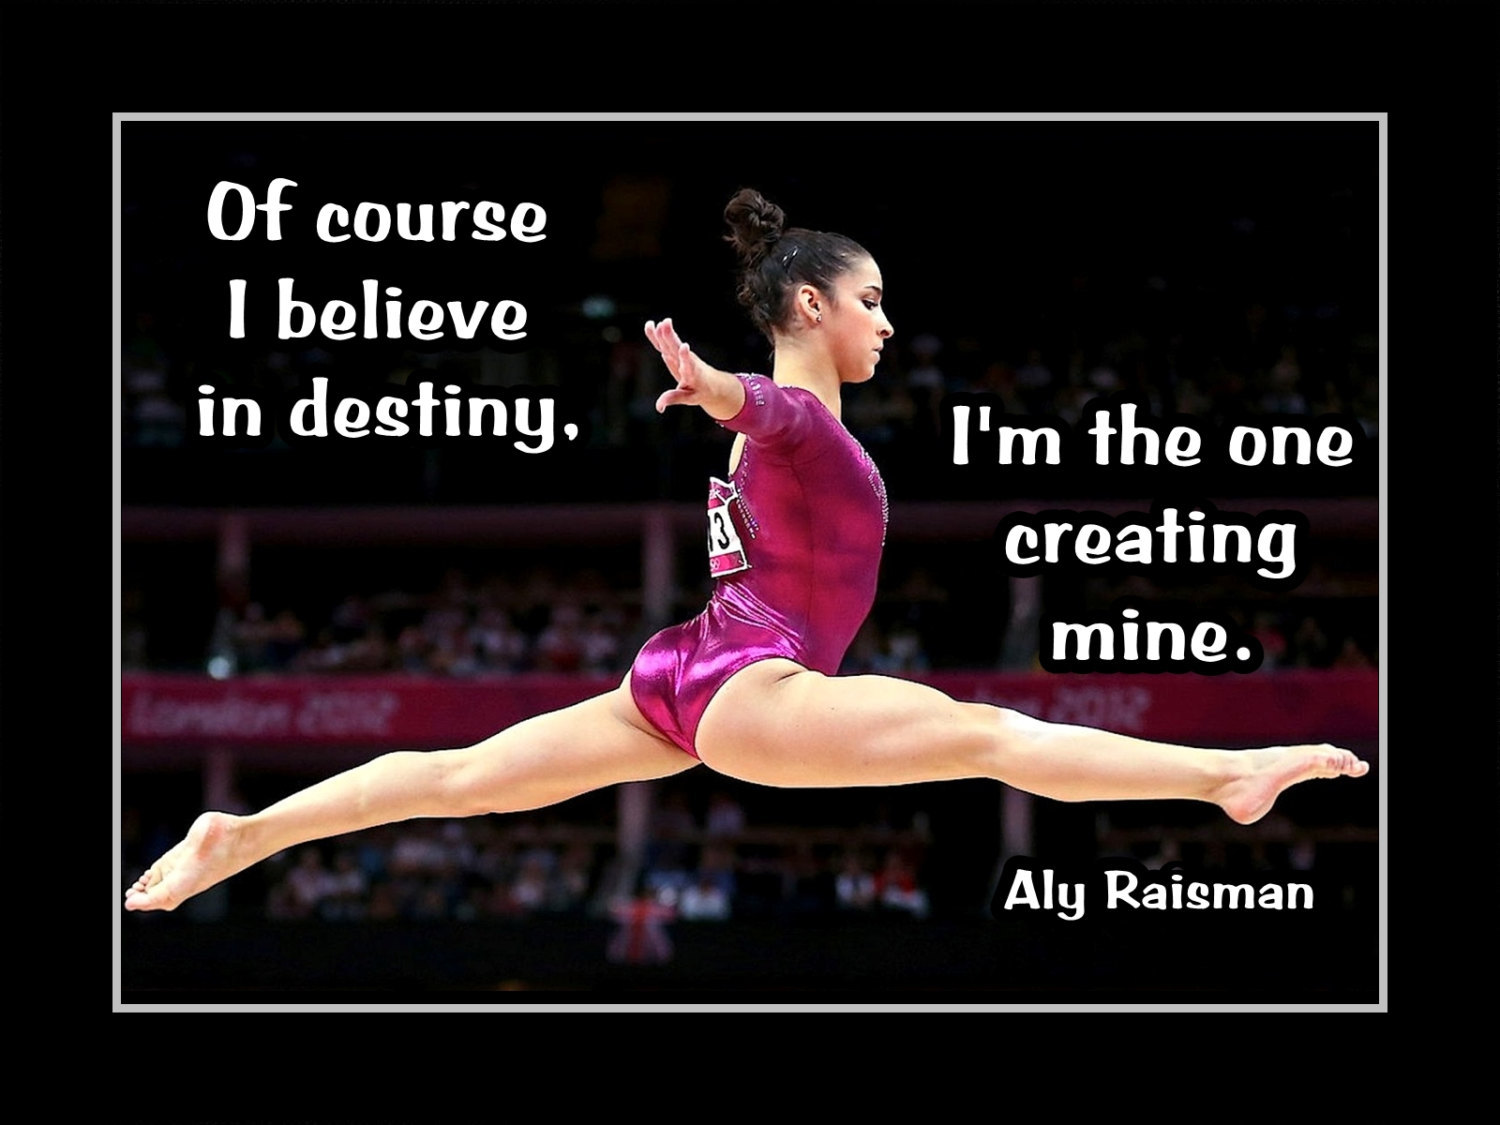 eaa63e936a82d Il fullxfull.855756300 n2qi. Il fullxfull.855756300 n2qi. Inspirational  Gymnastics Motivation Quote Poster Aly Raisman Photo Wall Art Gift